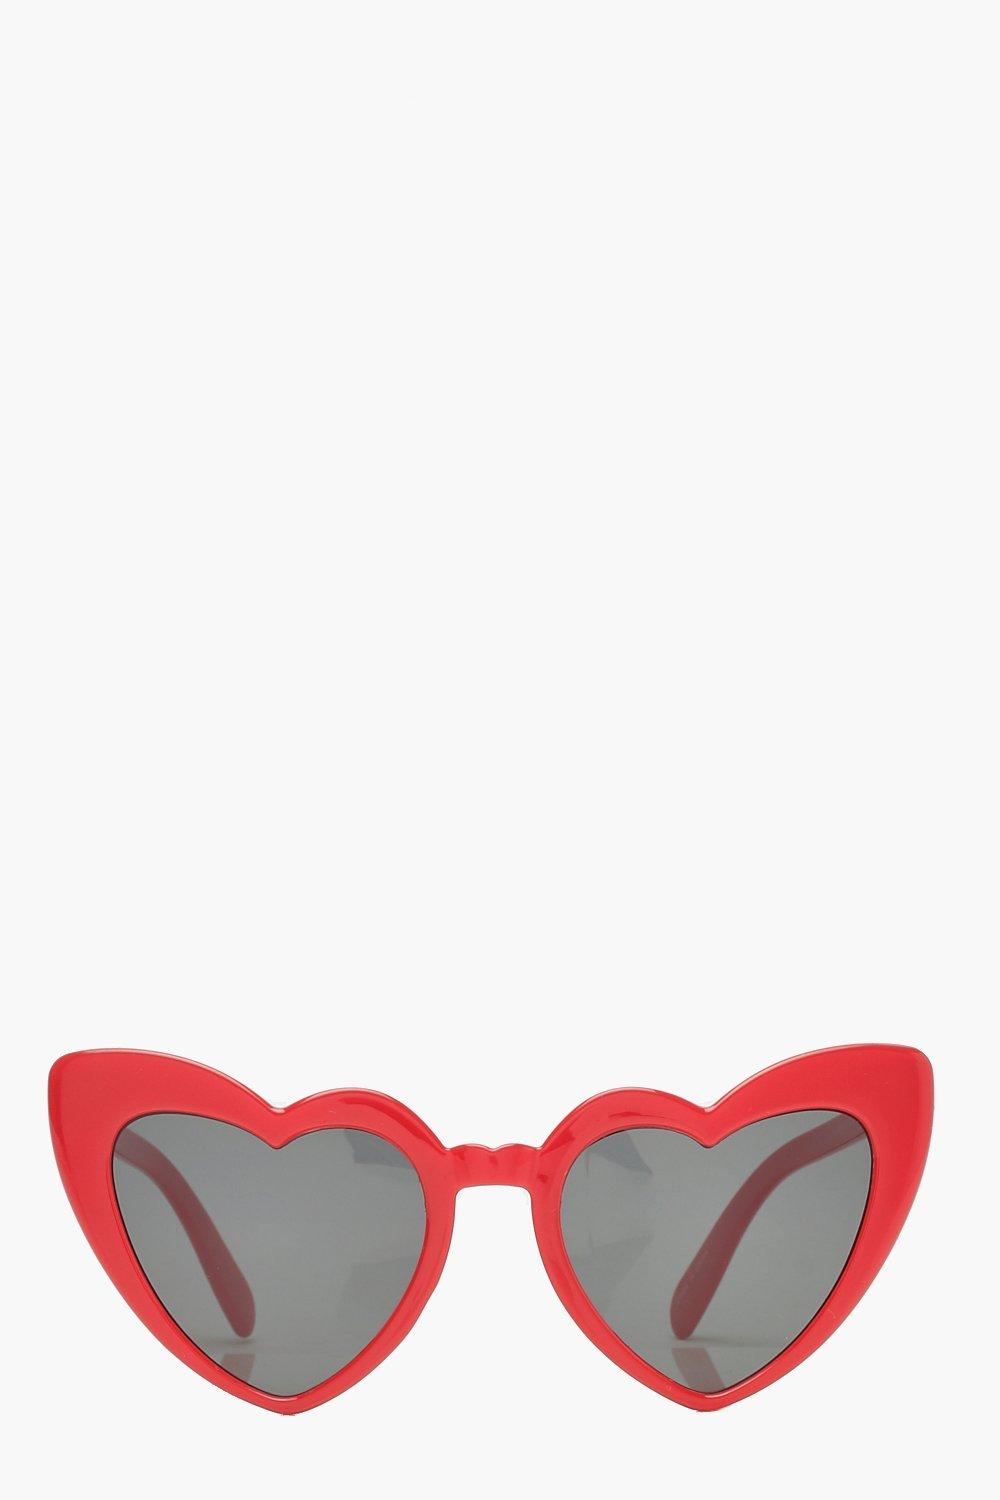 boohoo Womens Oversized Heart Cat Eye Sunglasses - Red - One Size, Red